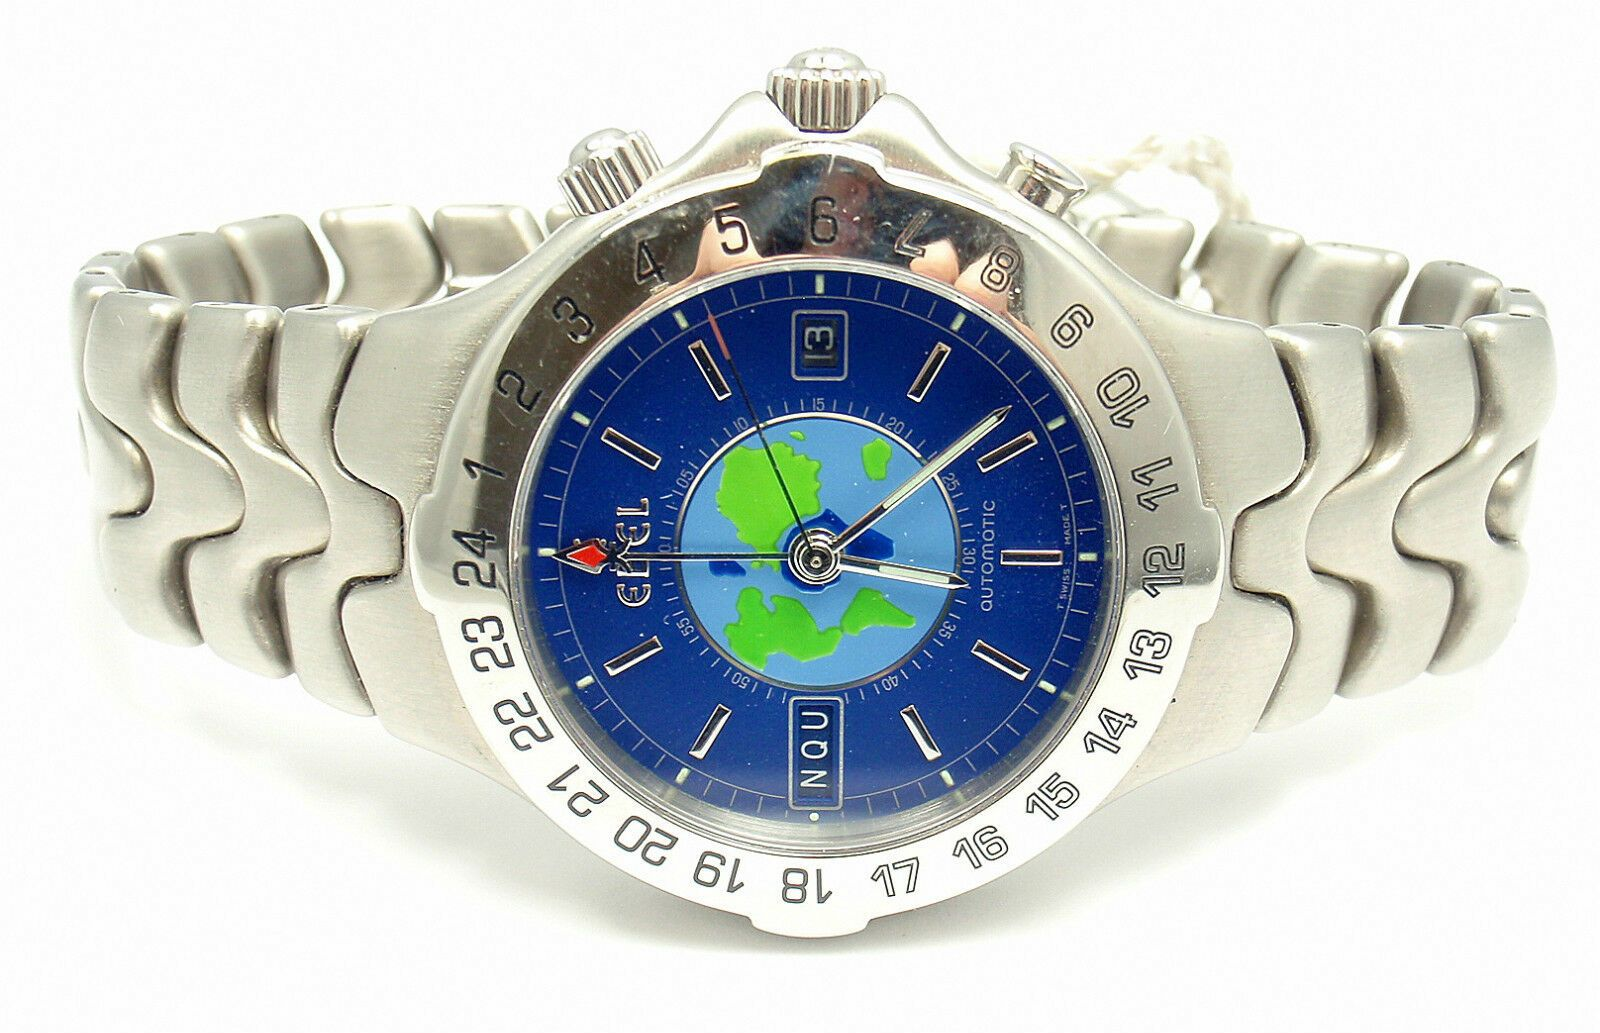 SHARP! AUTHENTIC EBEL STAINLESS STEEL BLUE DIAL SPORTWAVE WORLD TIME WATCH